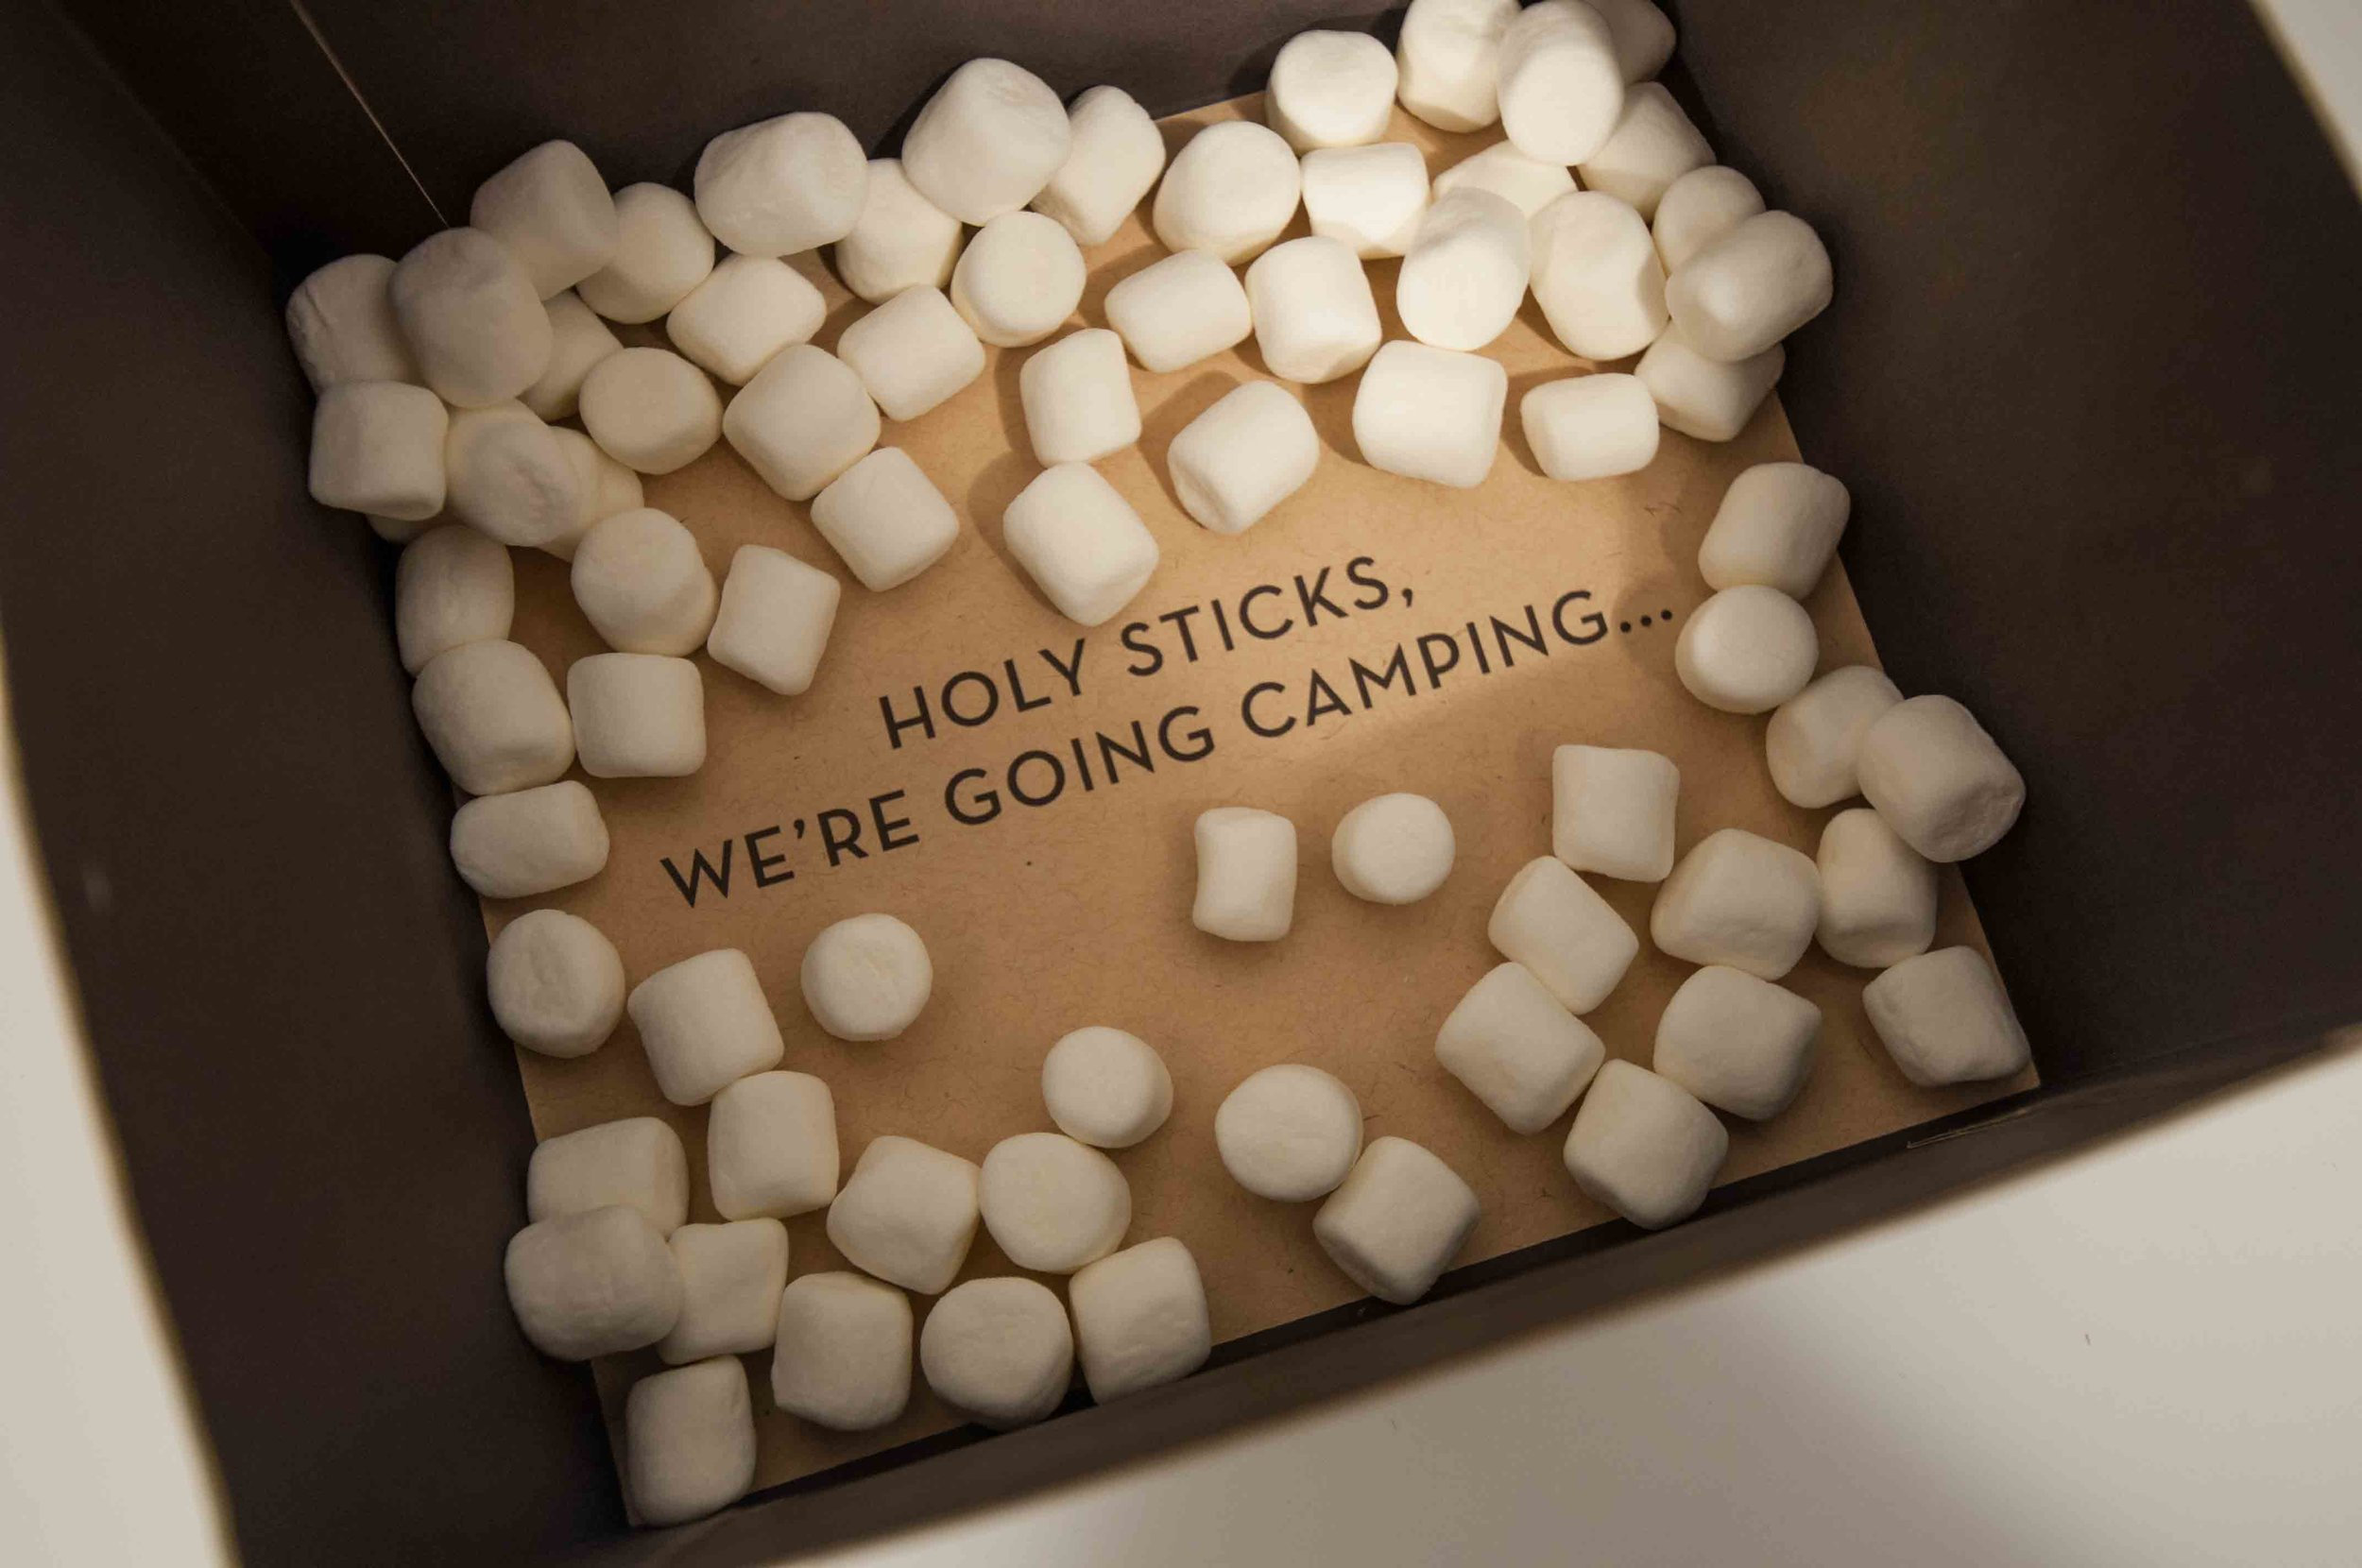 Colleen Goldhorn Photography and Design – The Sticks: Premium Camping Kit